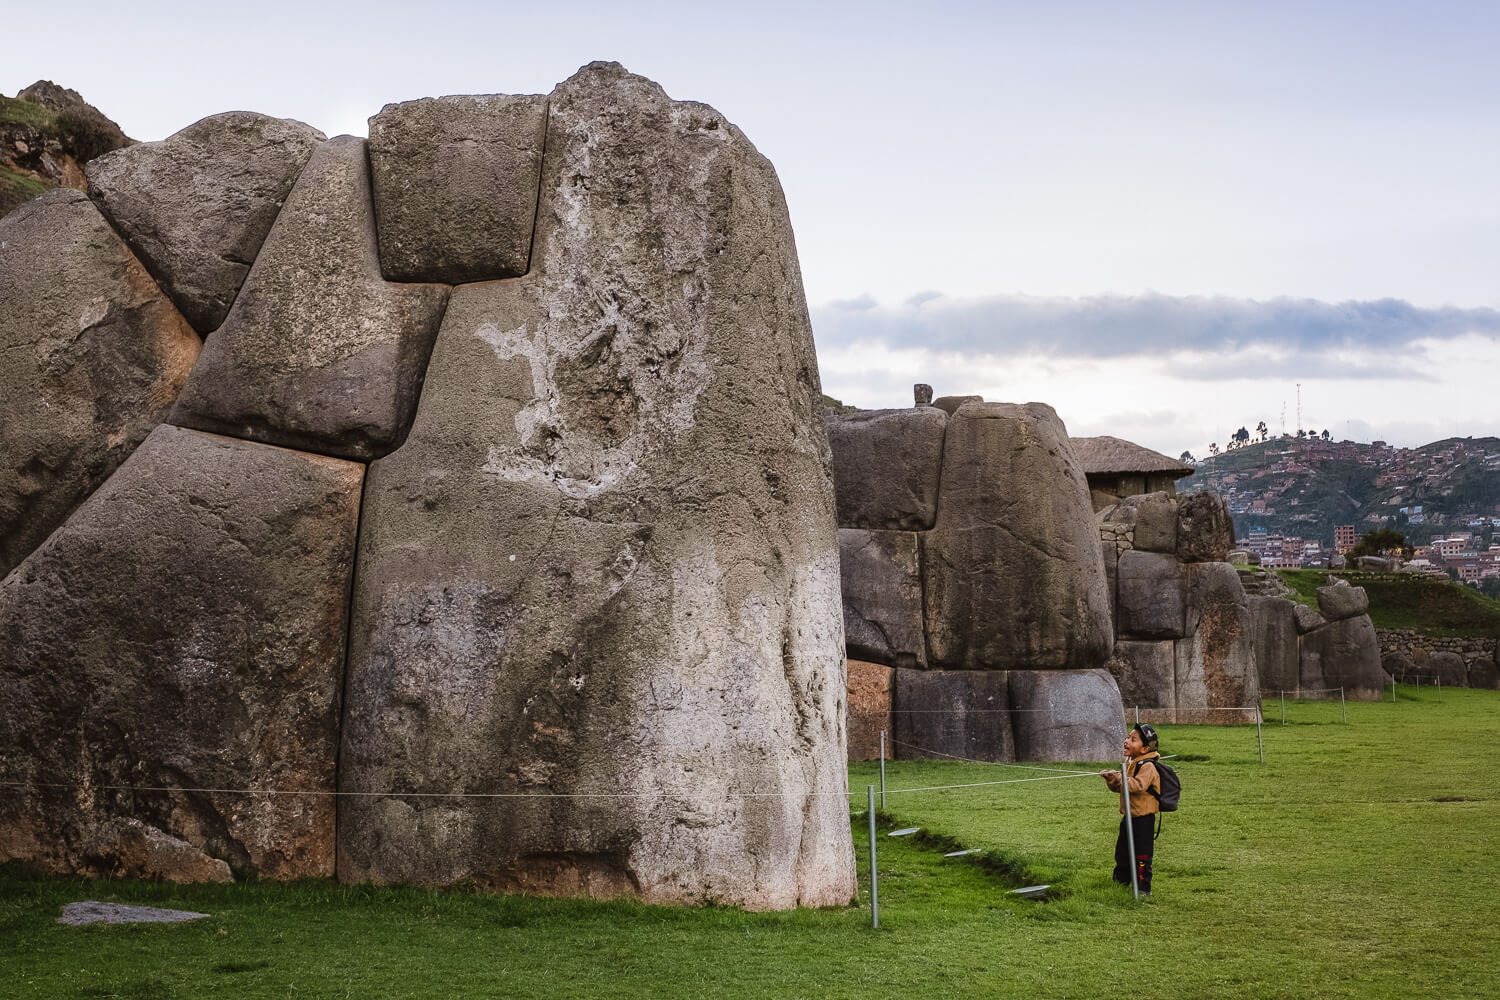 """Child looking at the structure of Saqsaywaman, Cusco. Travel photography and guide by © Natasha Lequepeys for """"And Then I Met Yoko"""". #cusco #peru #photoblog #travelblog #peruitinerary #cuscoitinerary"""